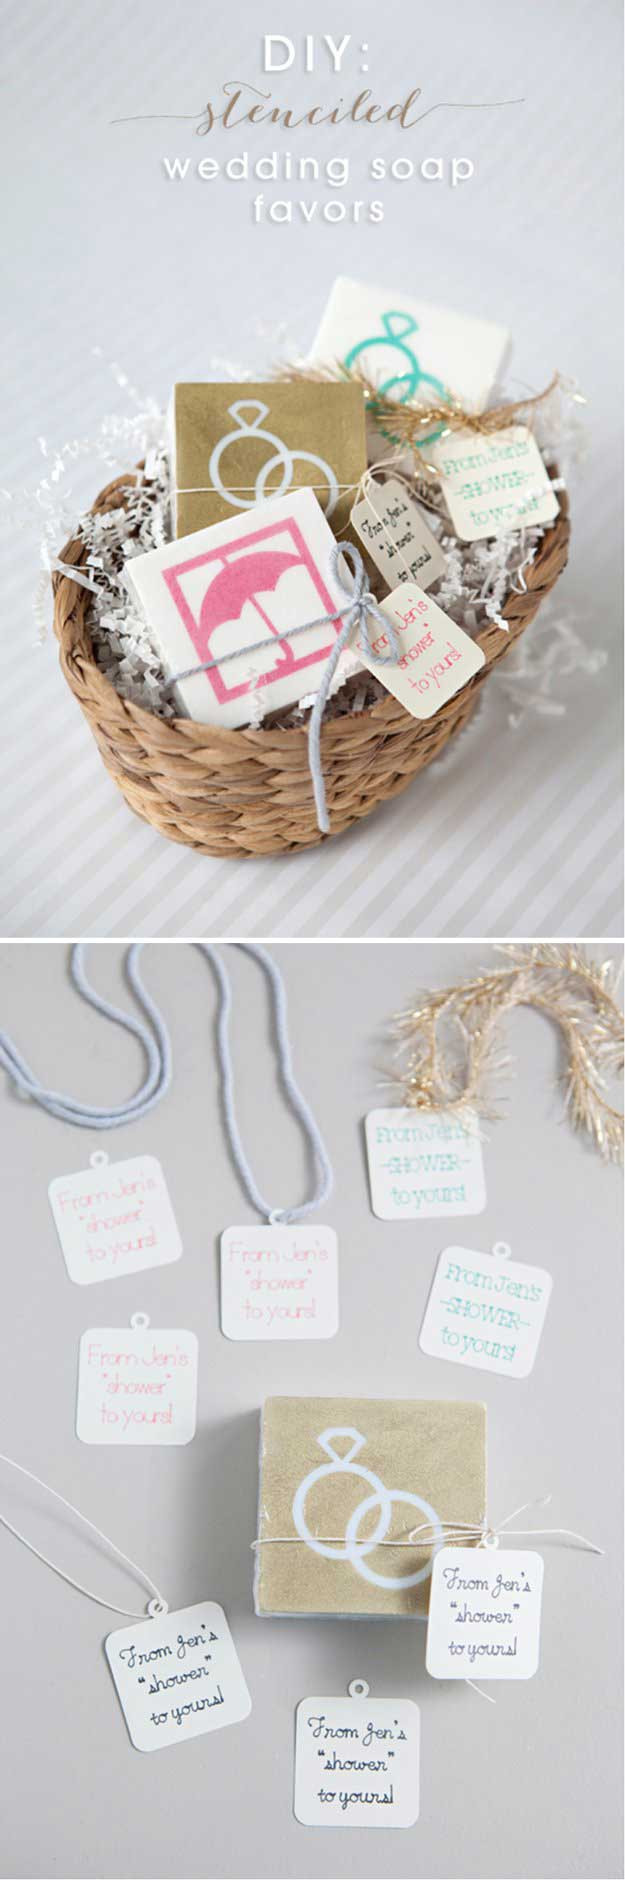 Homemade Wedding Gifts  17 Wedding Favor bags Ideas to Save Money